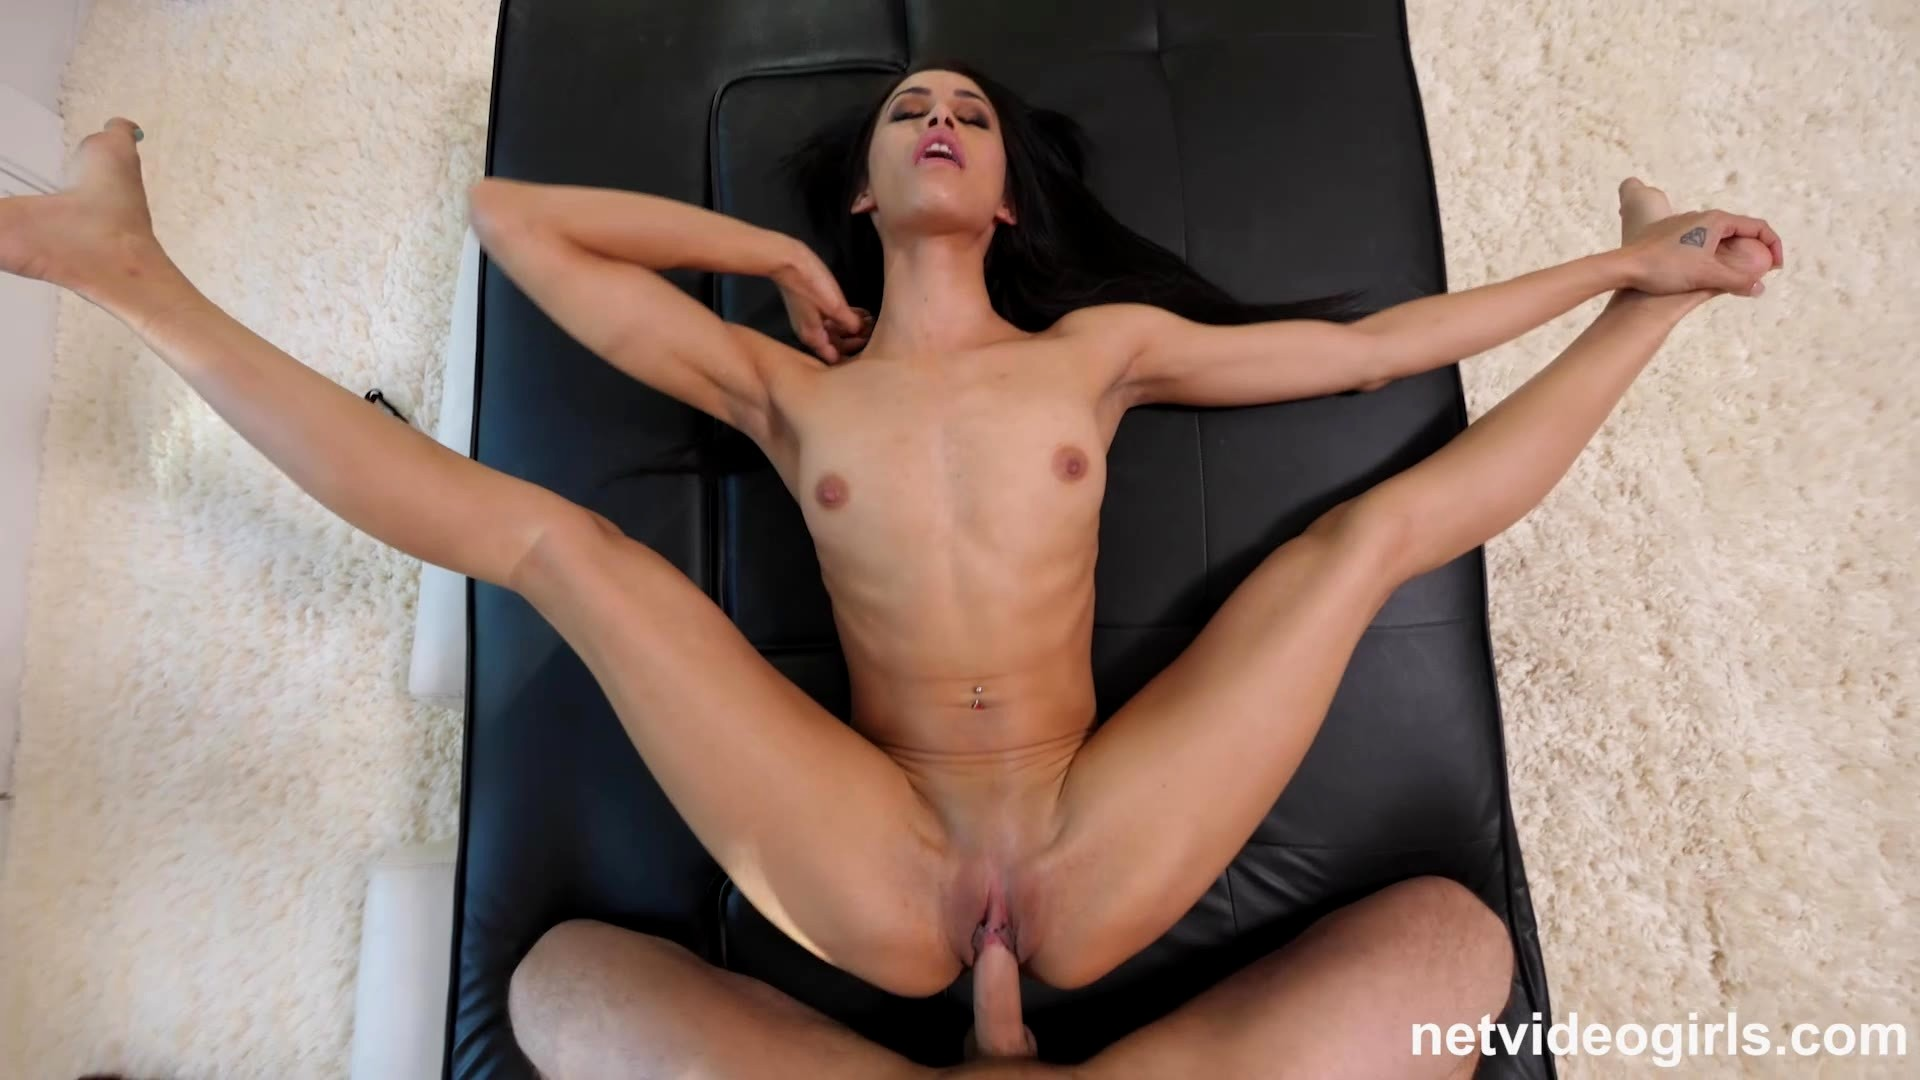 Net video girls porn-4950